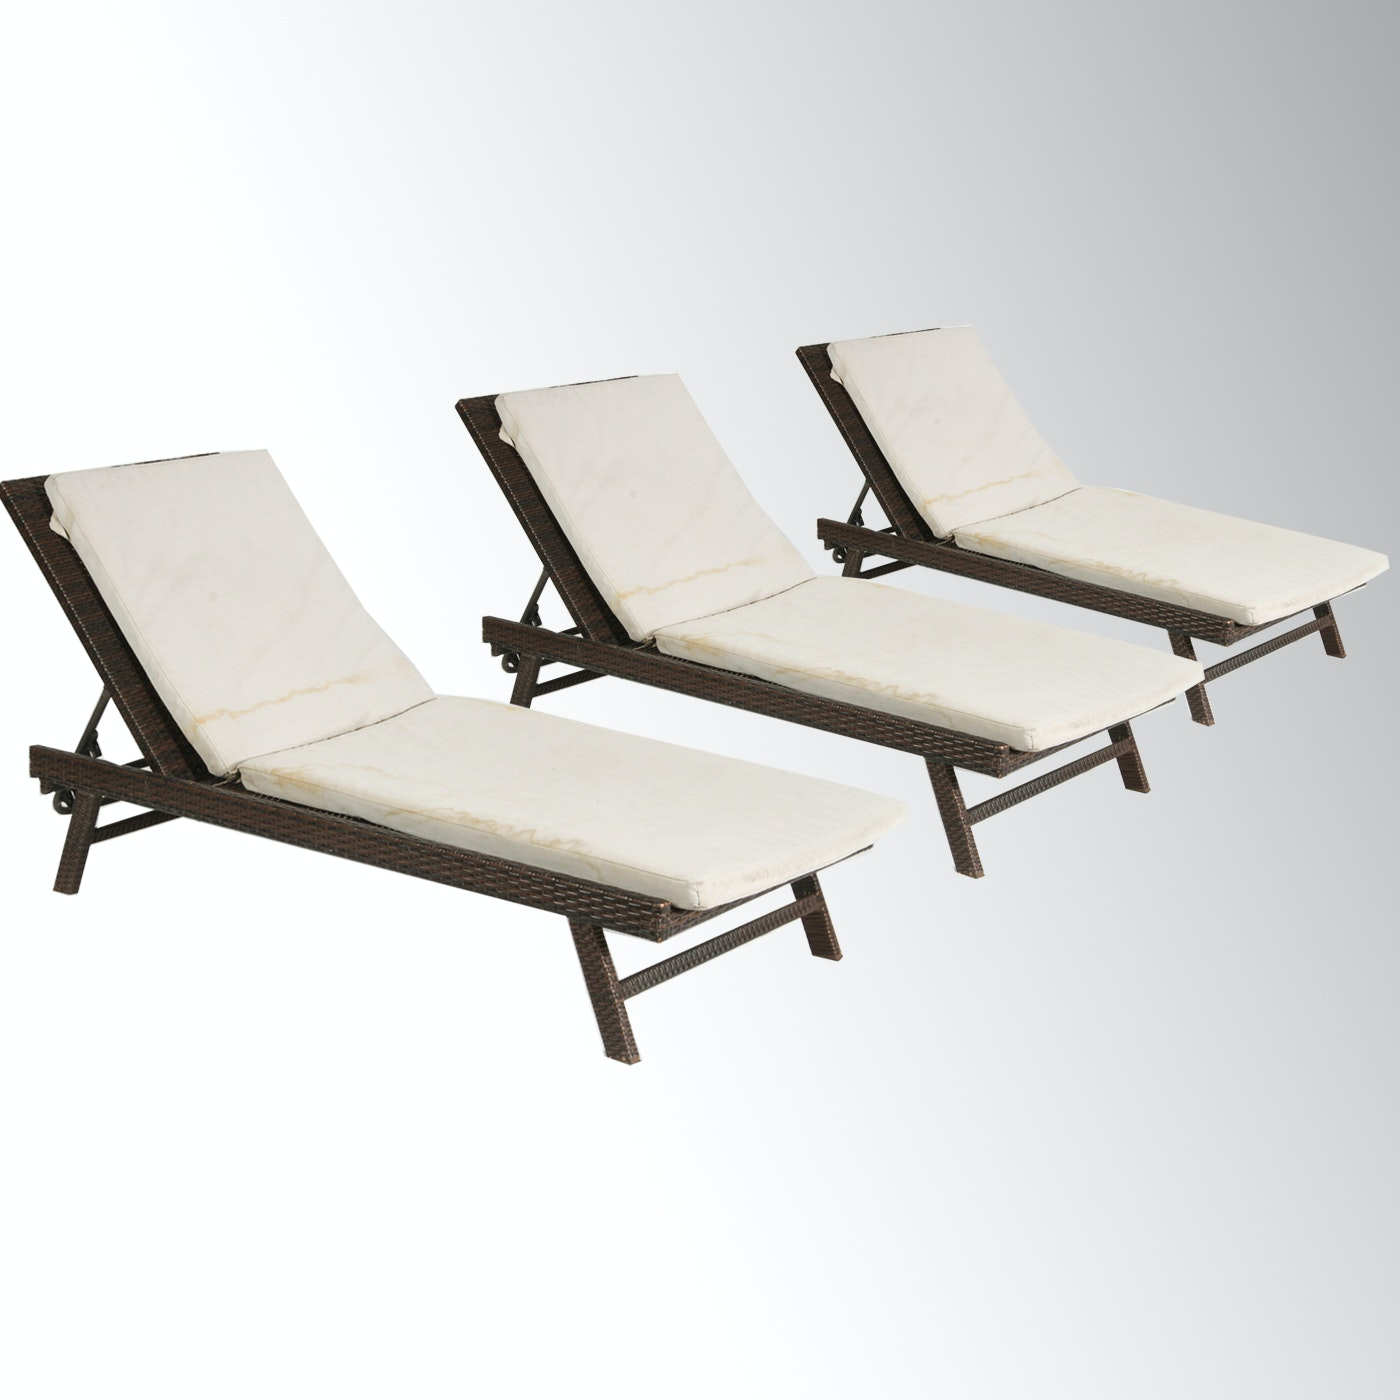 Set of Three Wicker Style Outdoor Lounge Chairs